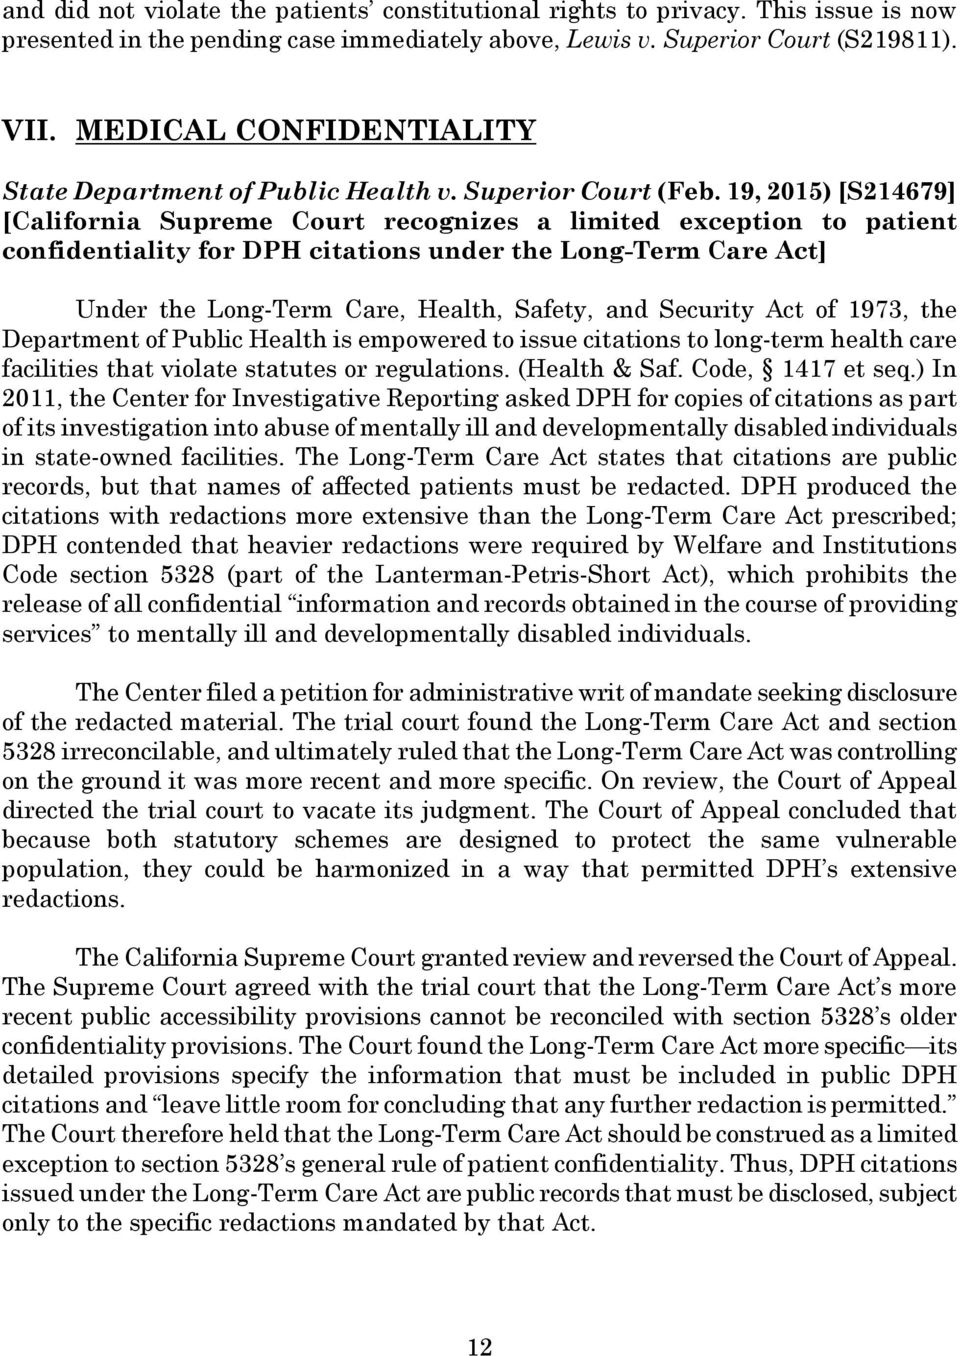 19, 2015) [S214679] [California Supreme Court recognizes a limited exception to patient confidentiality for DPH citations under the Long-Term Care Act] Under the Long-Term Care, Health, Safety, and